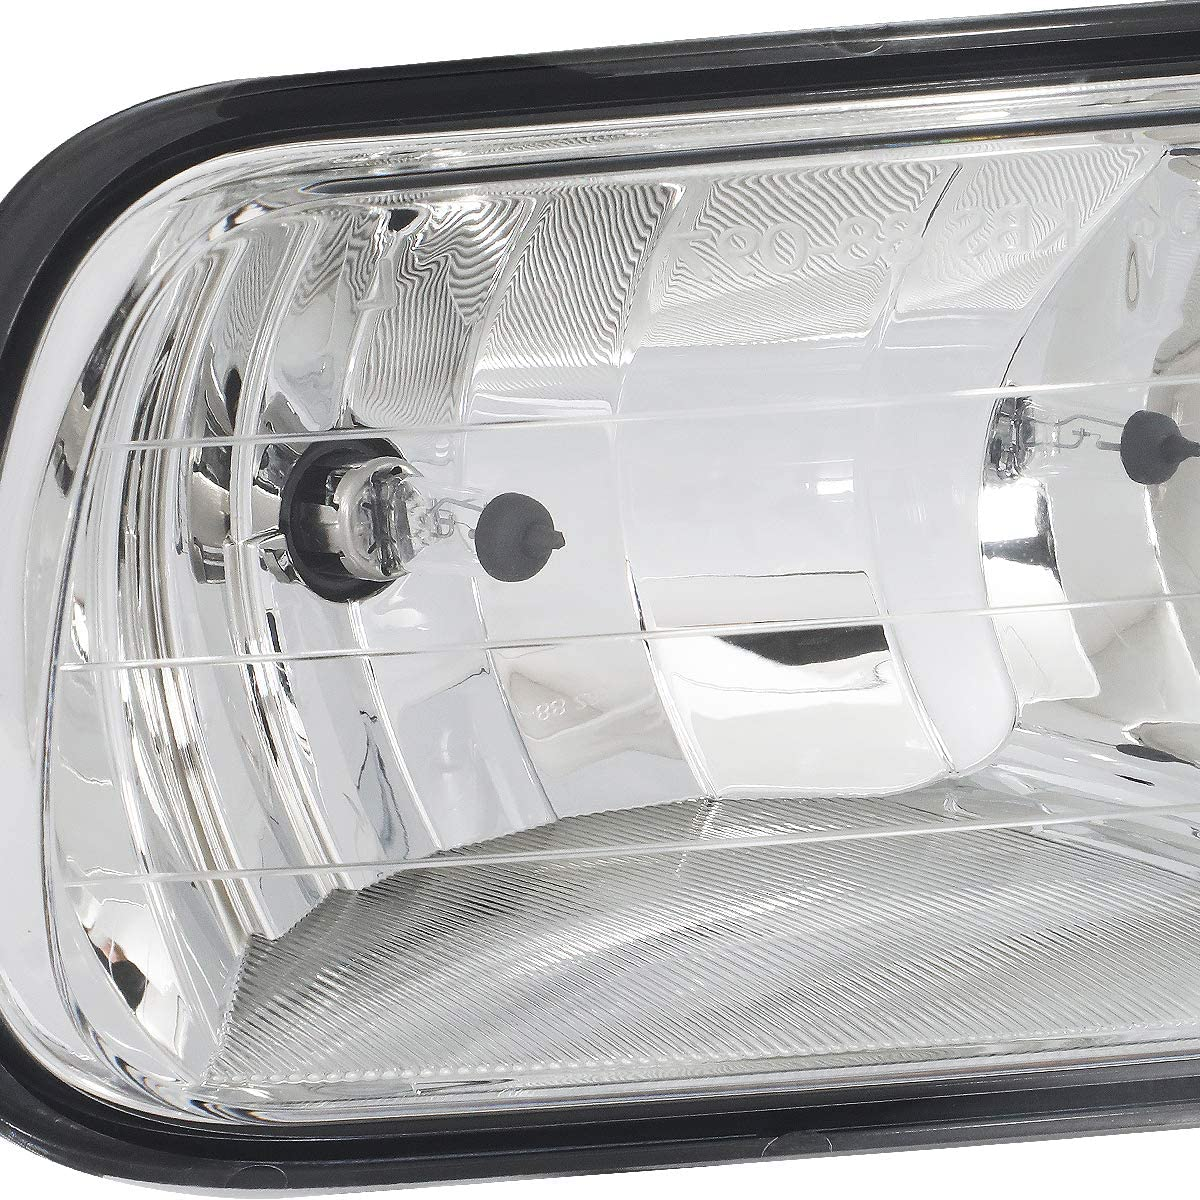 -Chrome 100W Halogen Passenger side WITH install kit 2012 Kenworth CONVENTIONAL Side Roof mount spotlight 6 inch